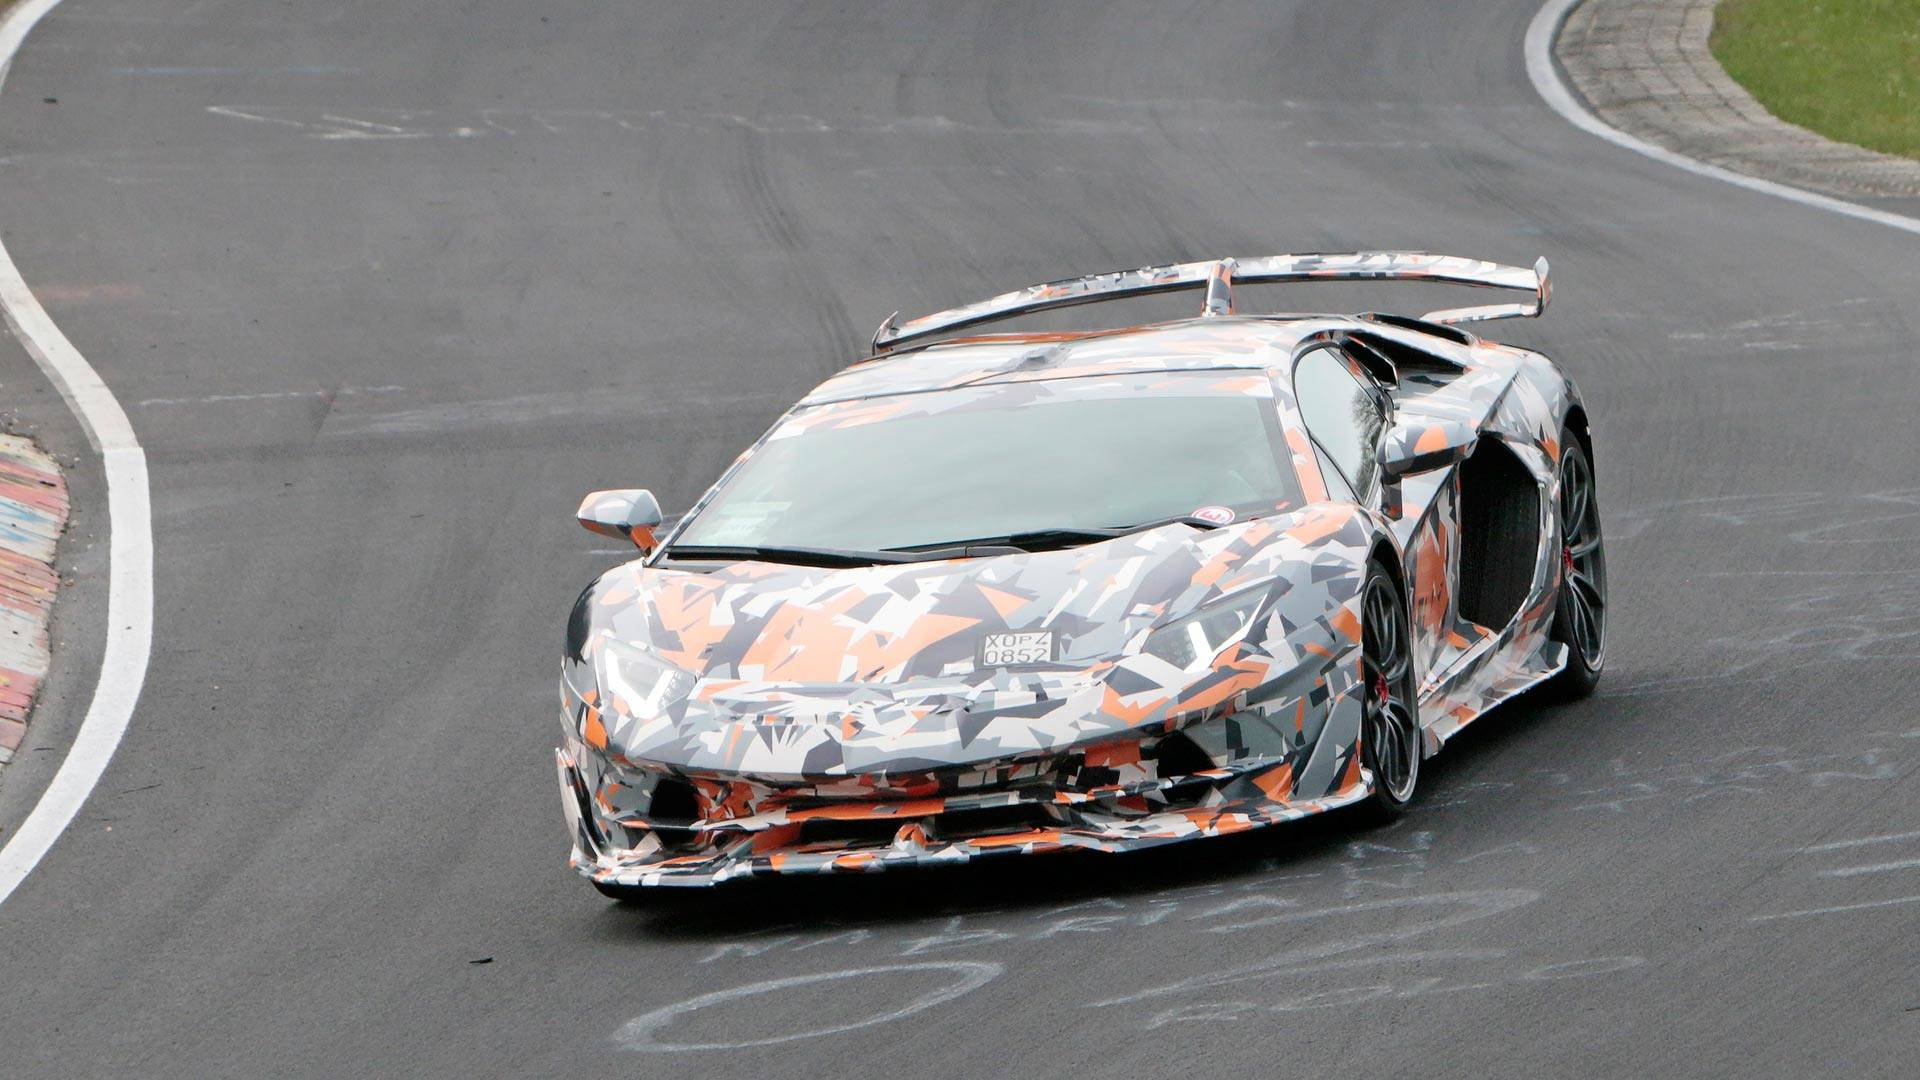 Lamborghini Aventador Svj Spied With Its Wild Body At The Ring